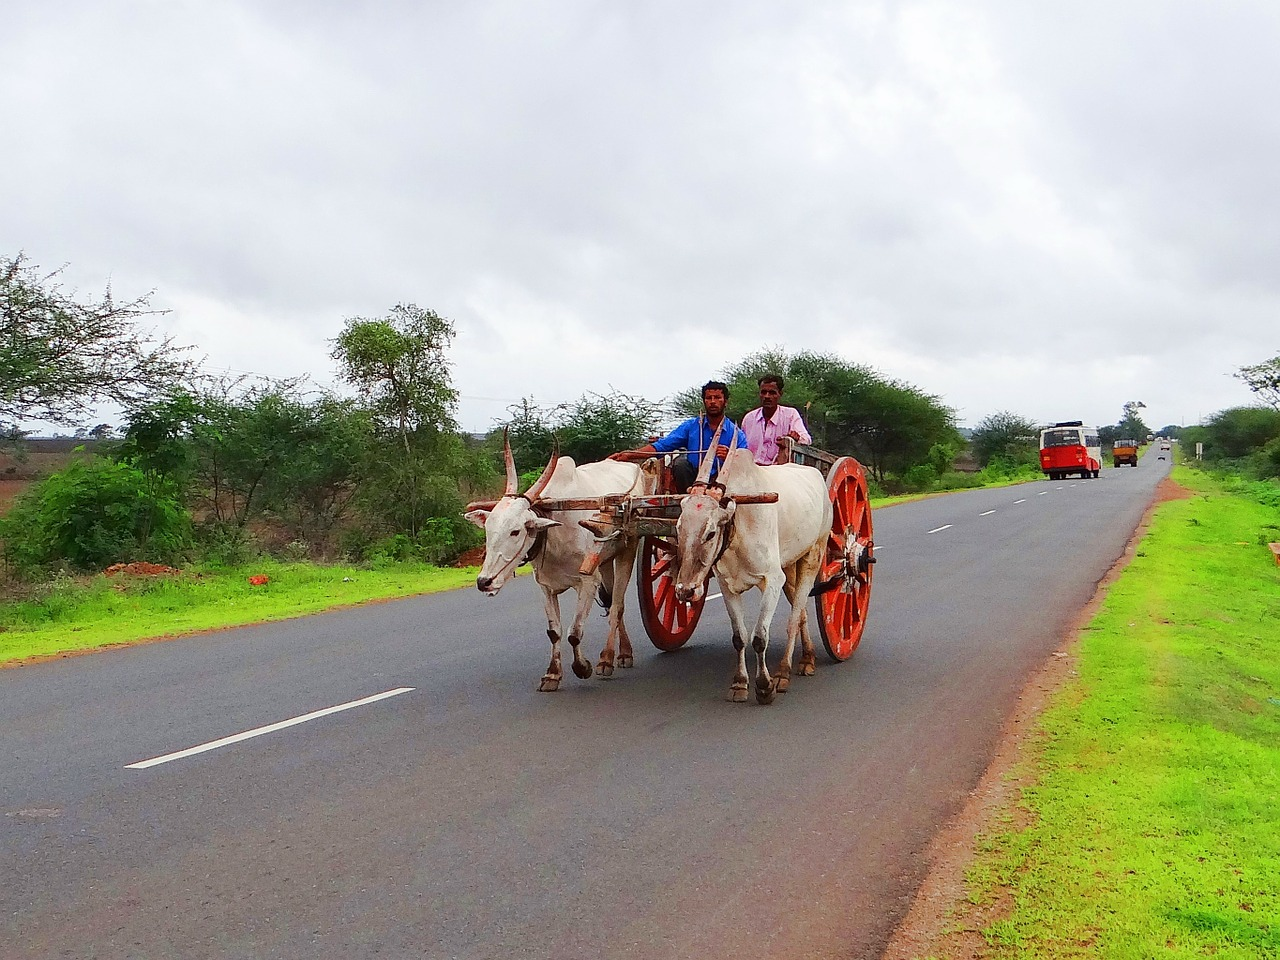 bullock cart,karnataka,india,gadag,hubli,highway,rural,country,road,countryside,free pictures, free photos, free images, royalty free, free illustrations, public domain